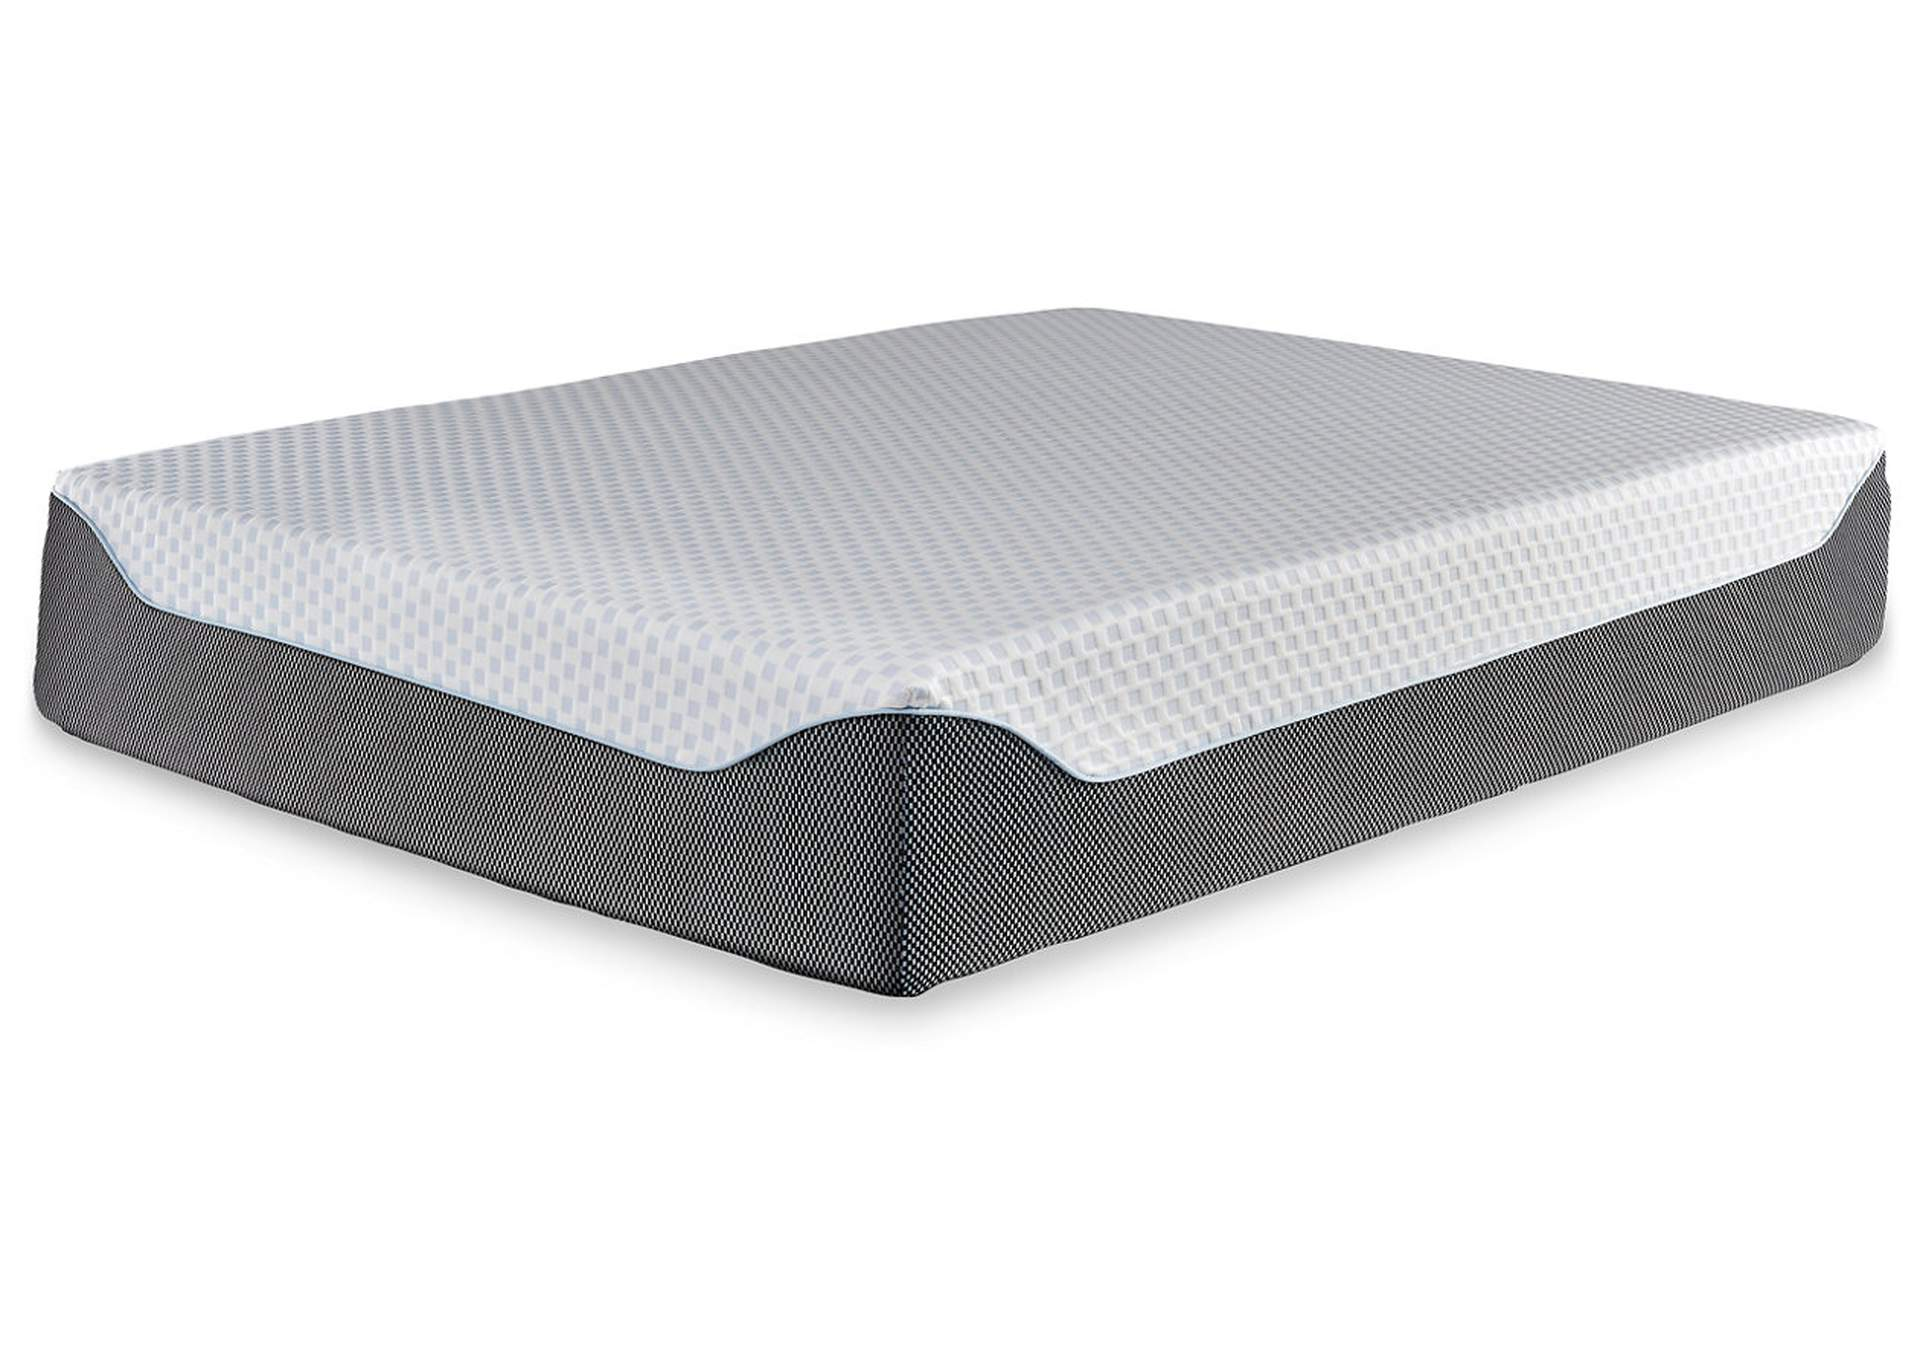 14 Inch Chime Elite Queen Memory Foam Mattress in a Box,Sierra Sleep by Ashley